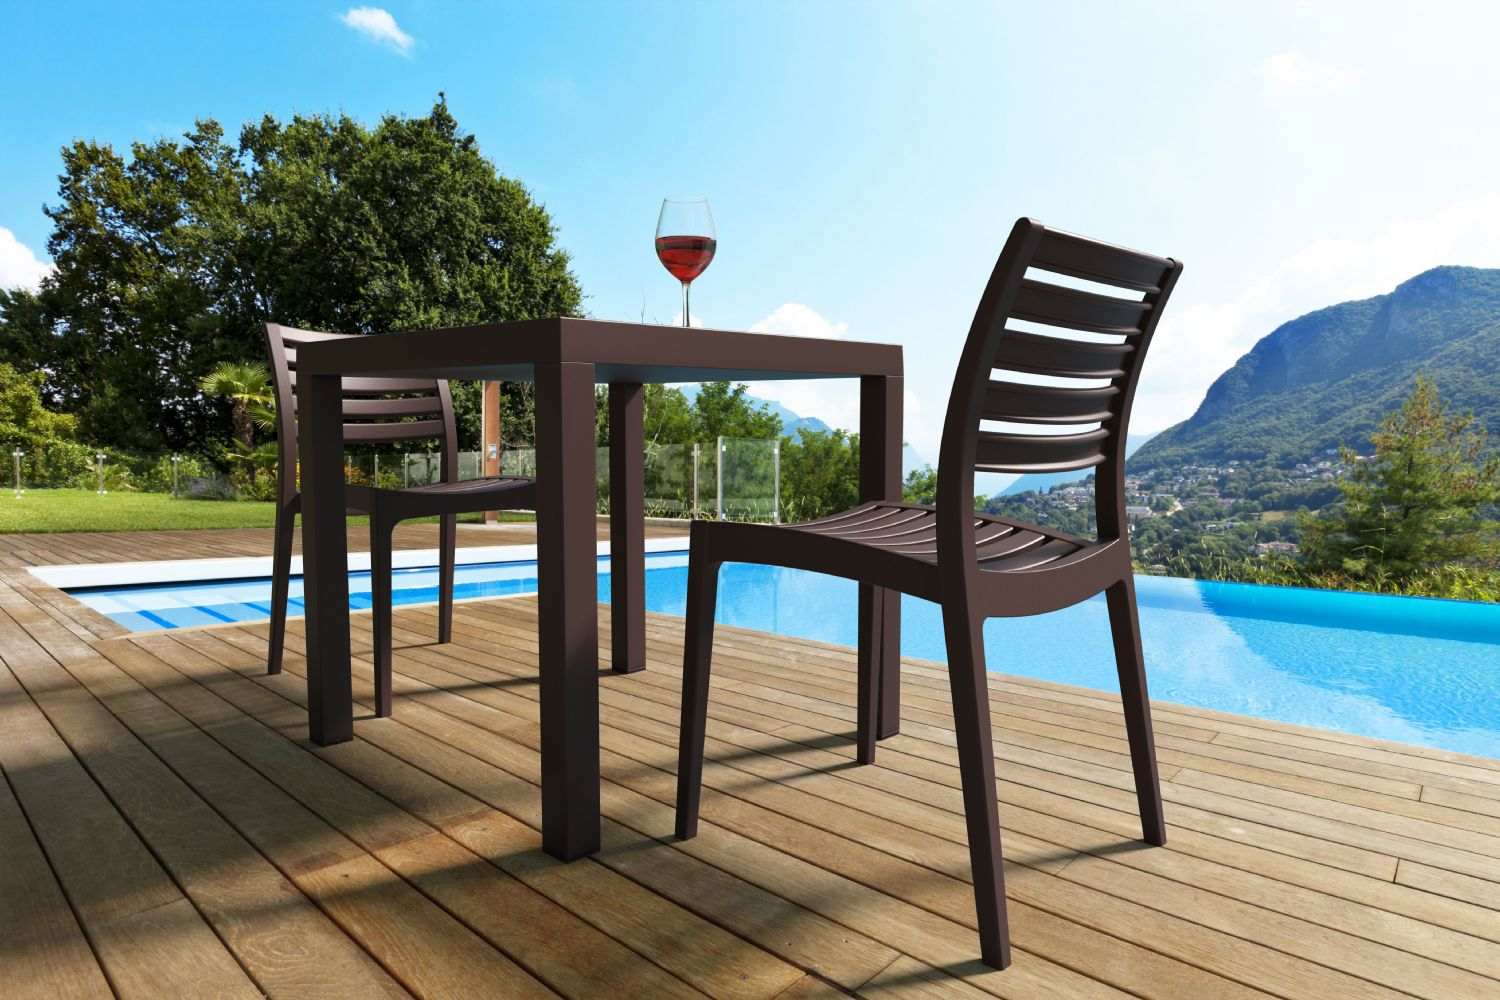 Ares Resin Square Outdoor Dining Set 5 Piece with Side Chairs ISP1641S - 7